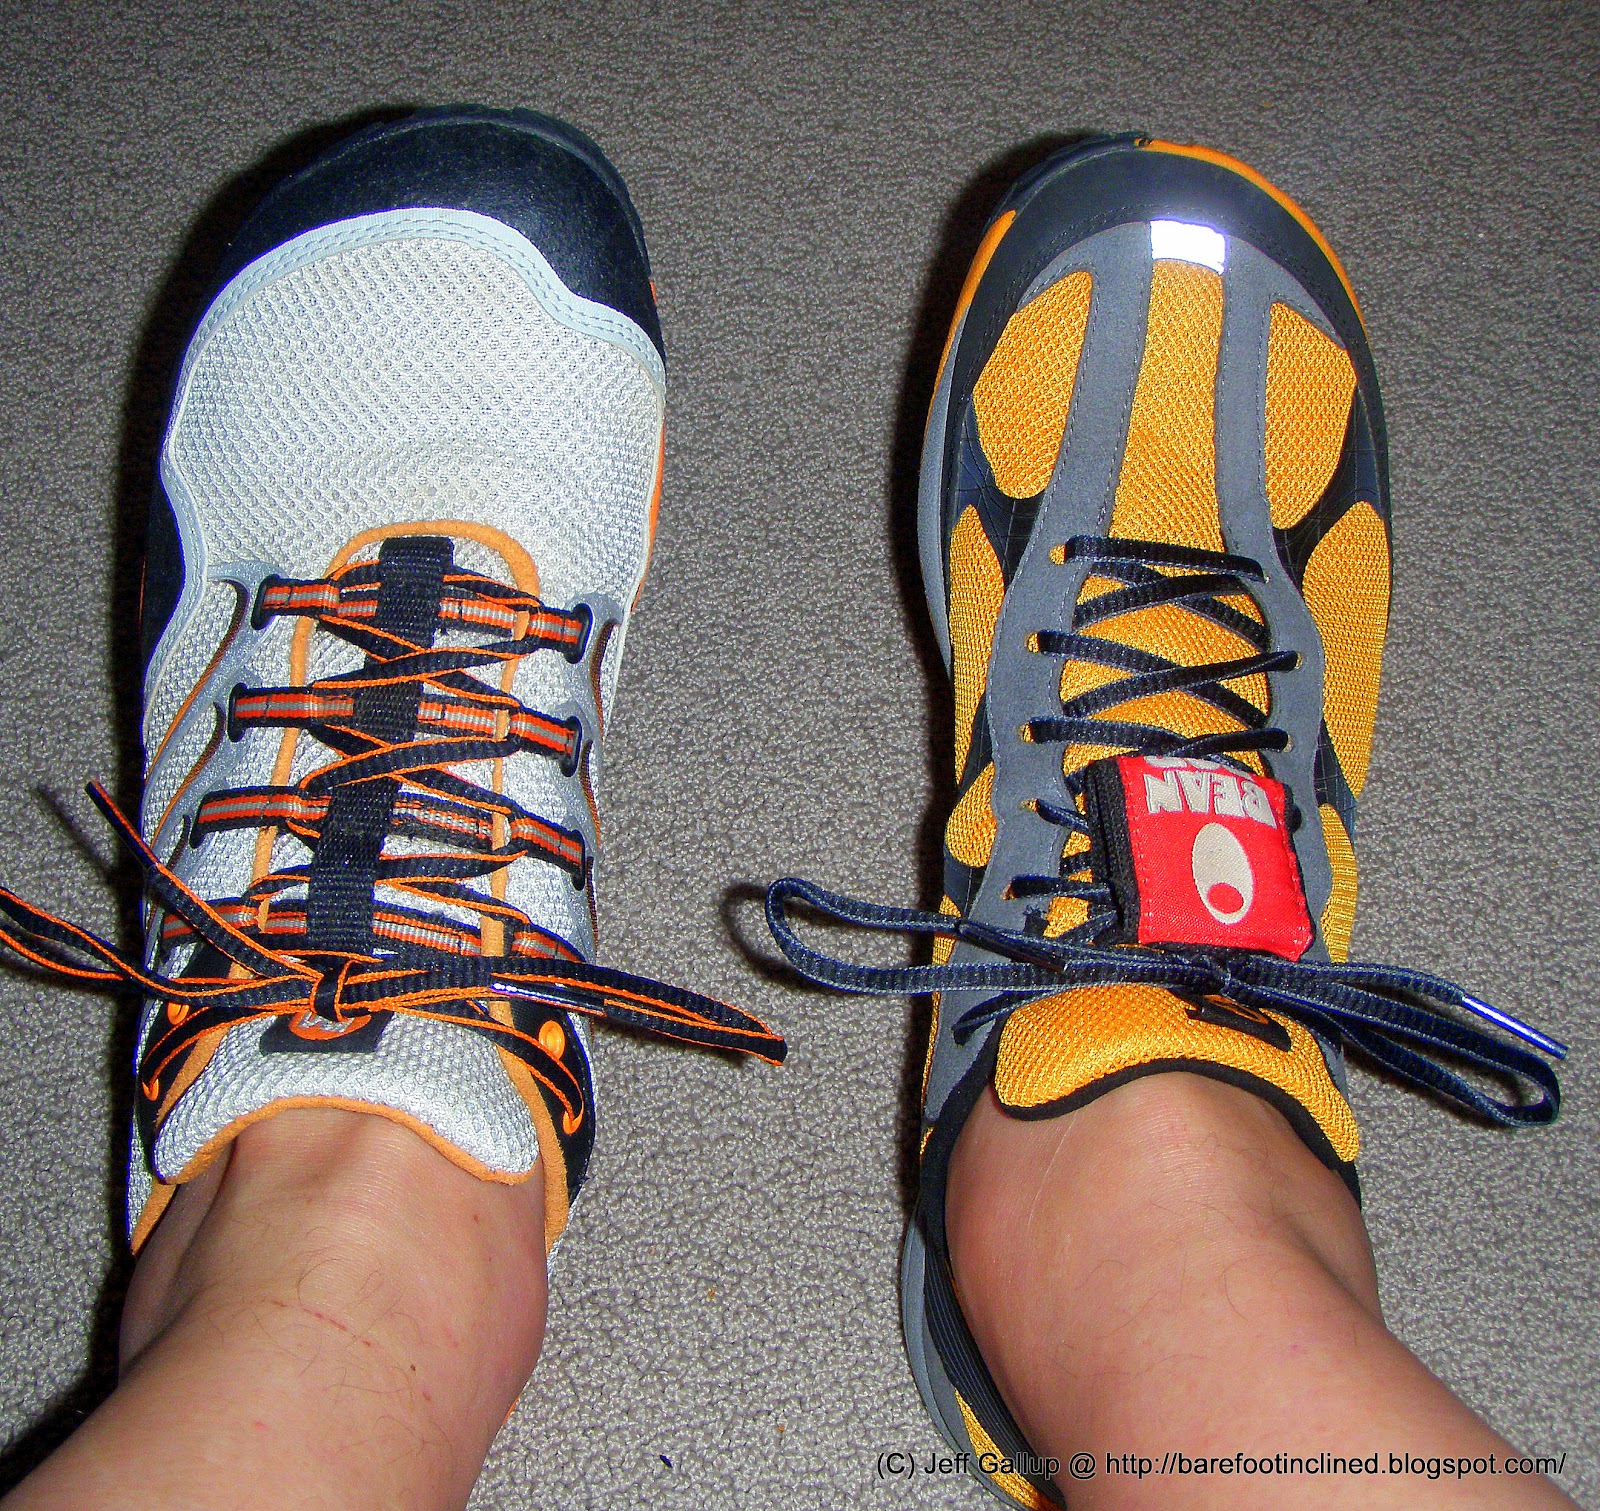 Tennis Shoes With Large Toe Box